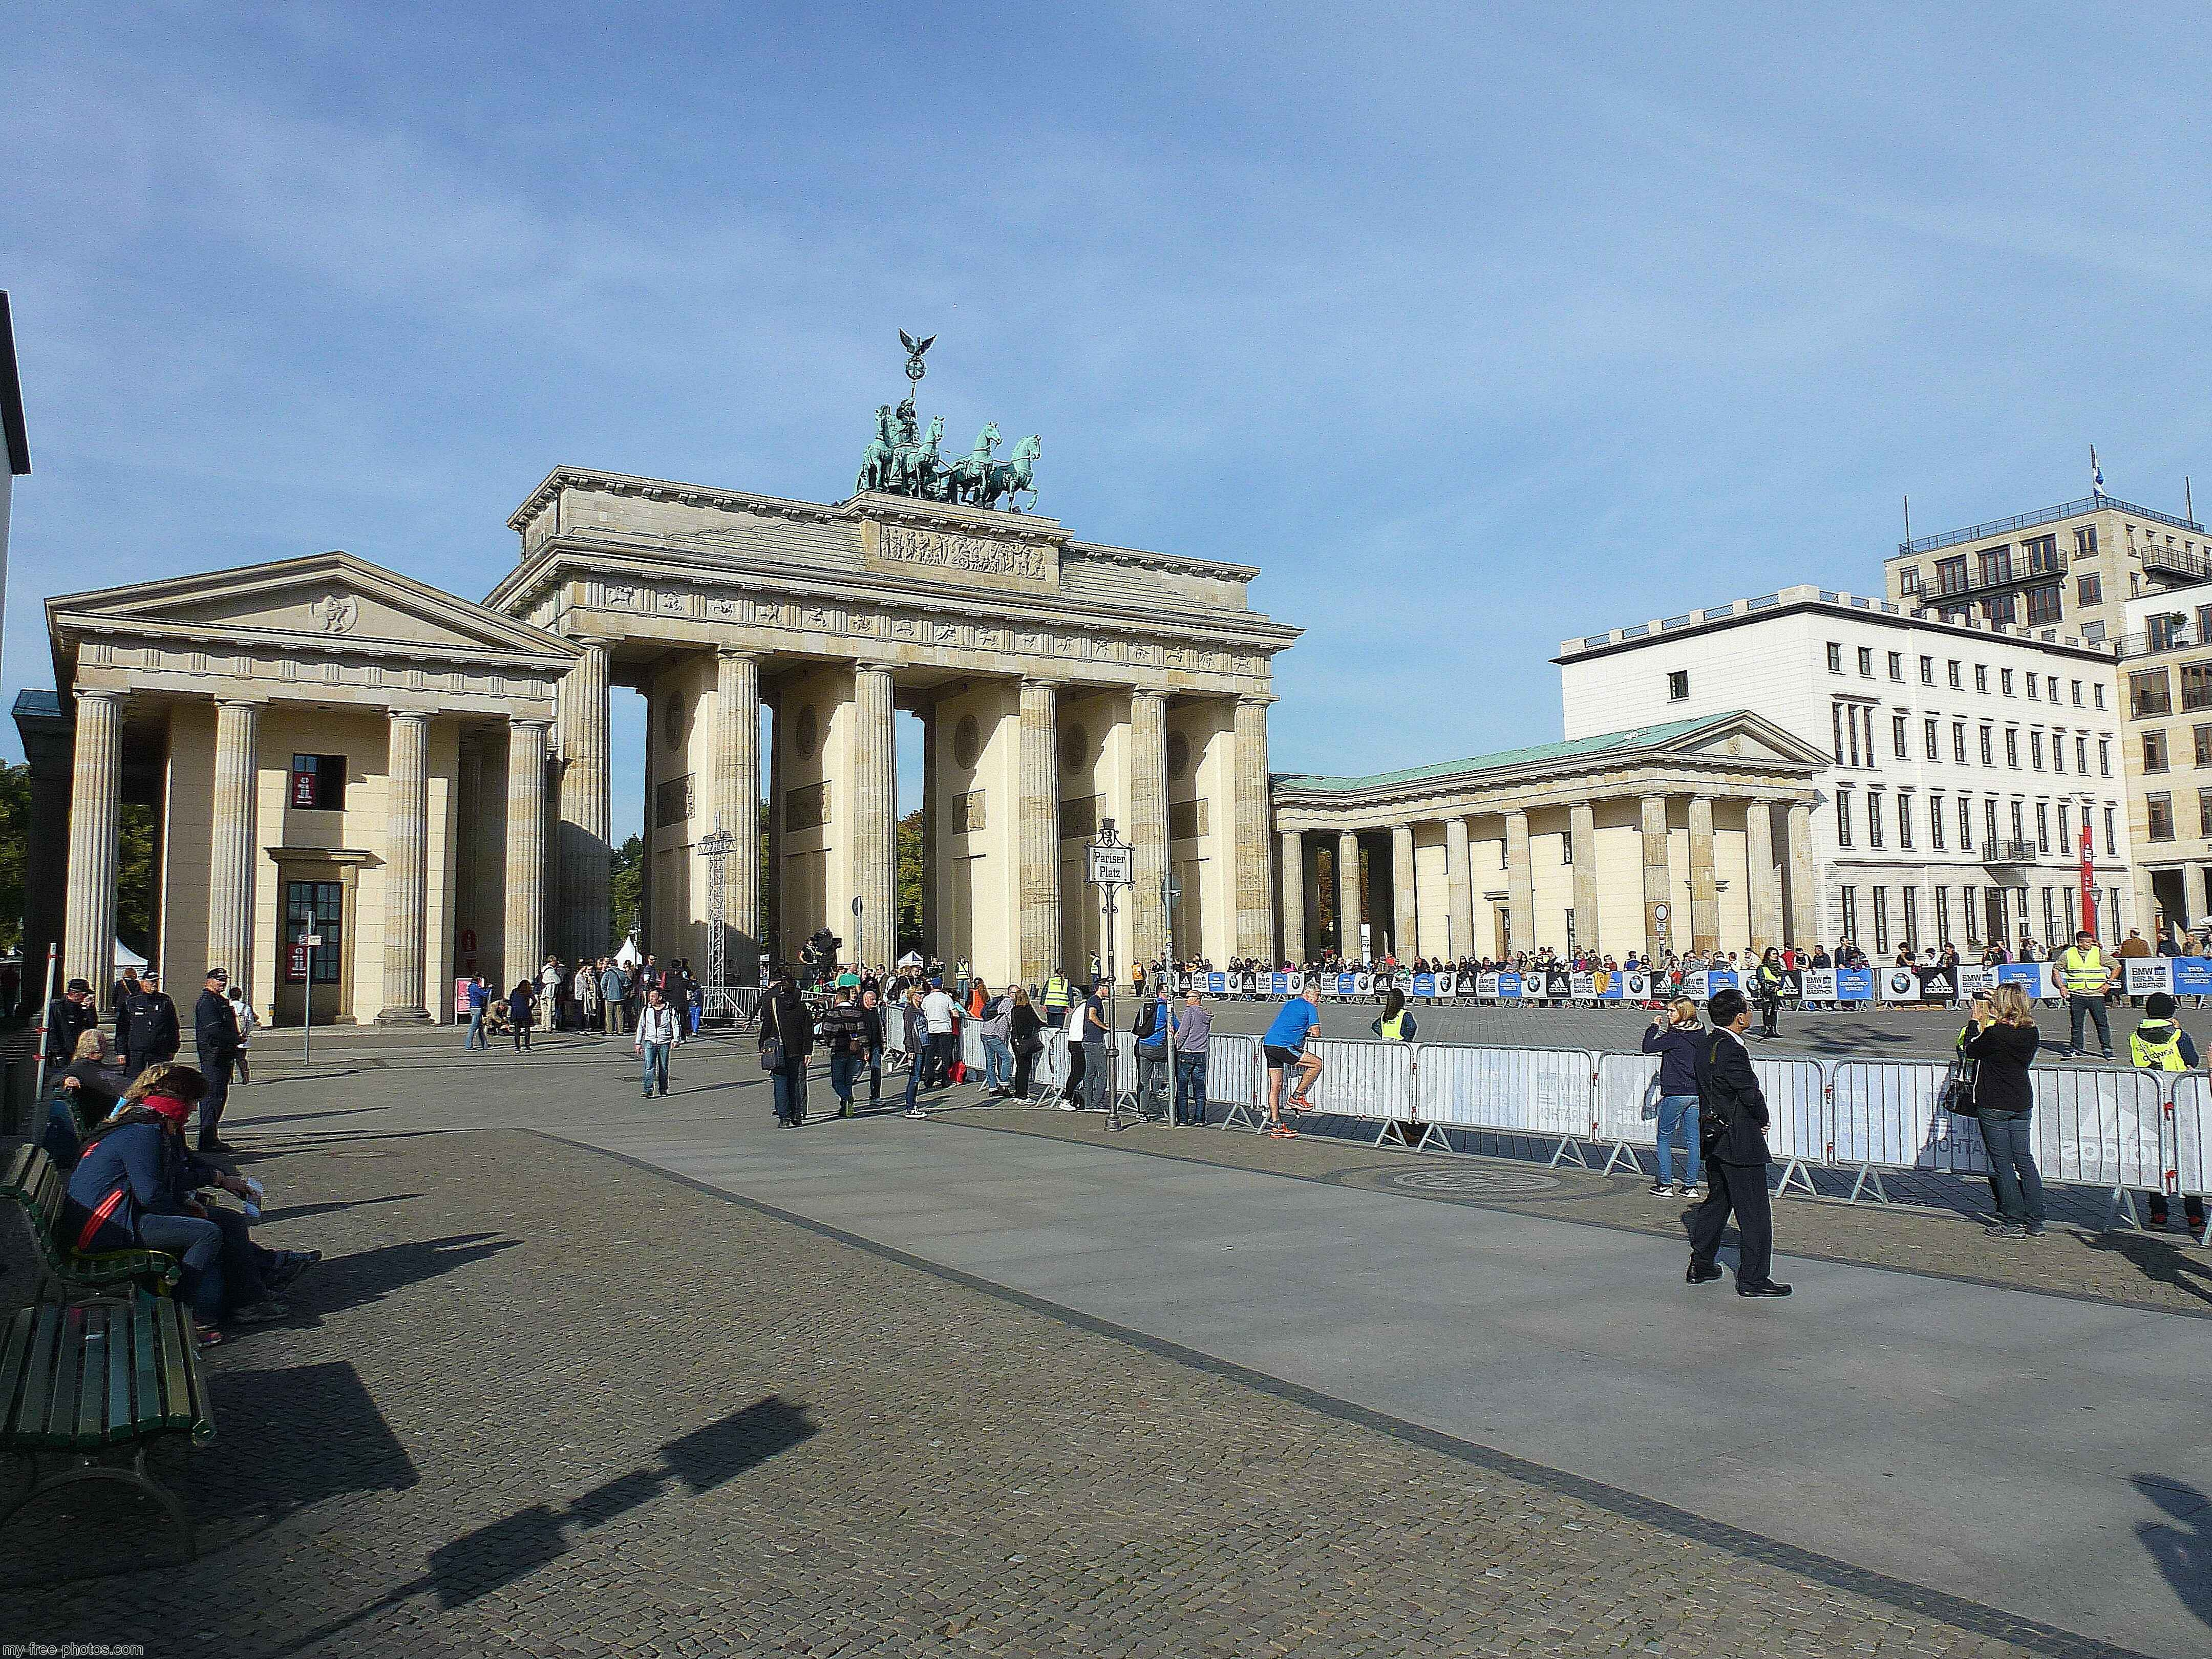 Berlin Brandenburger gate, Germany